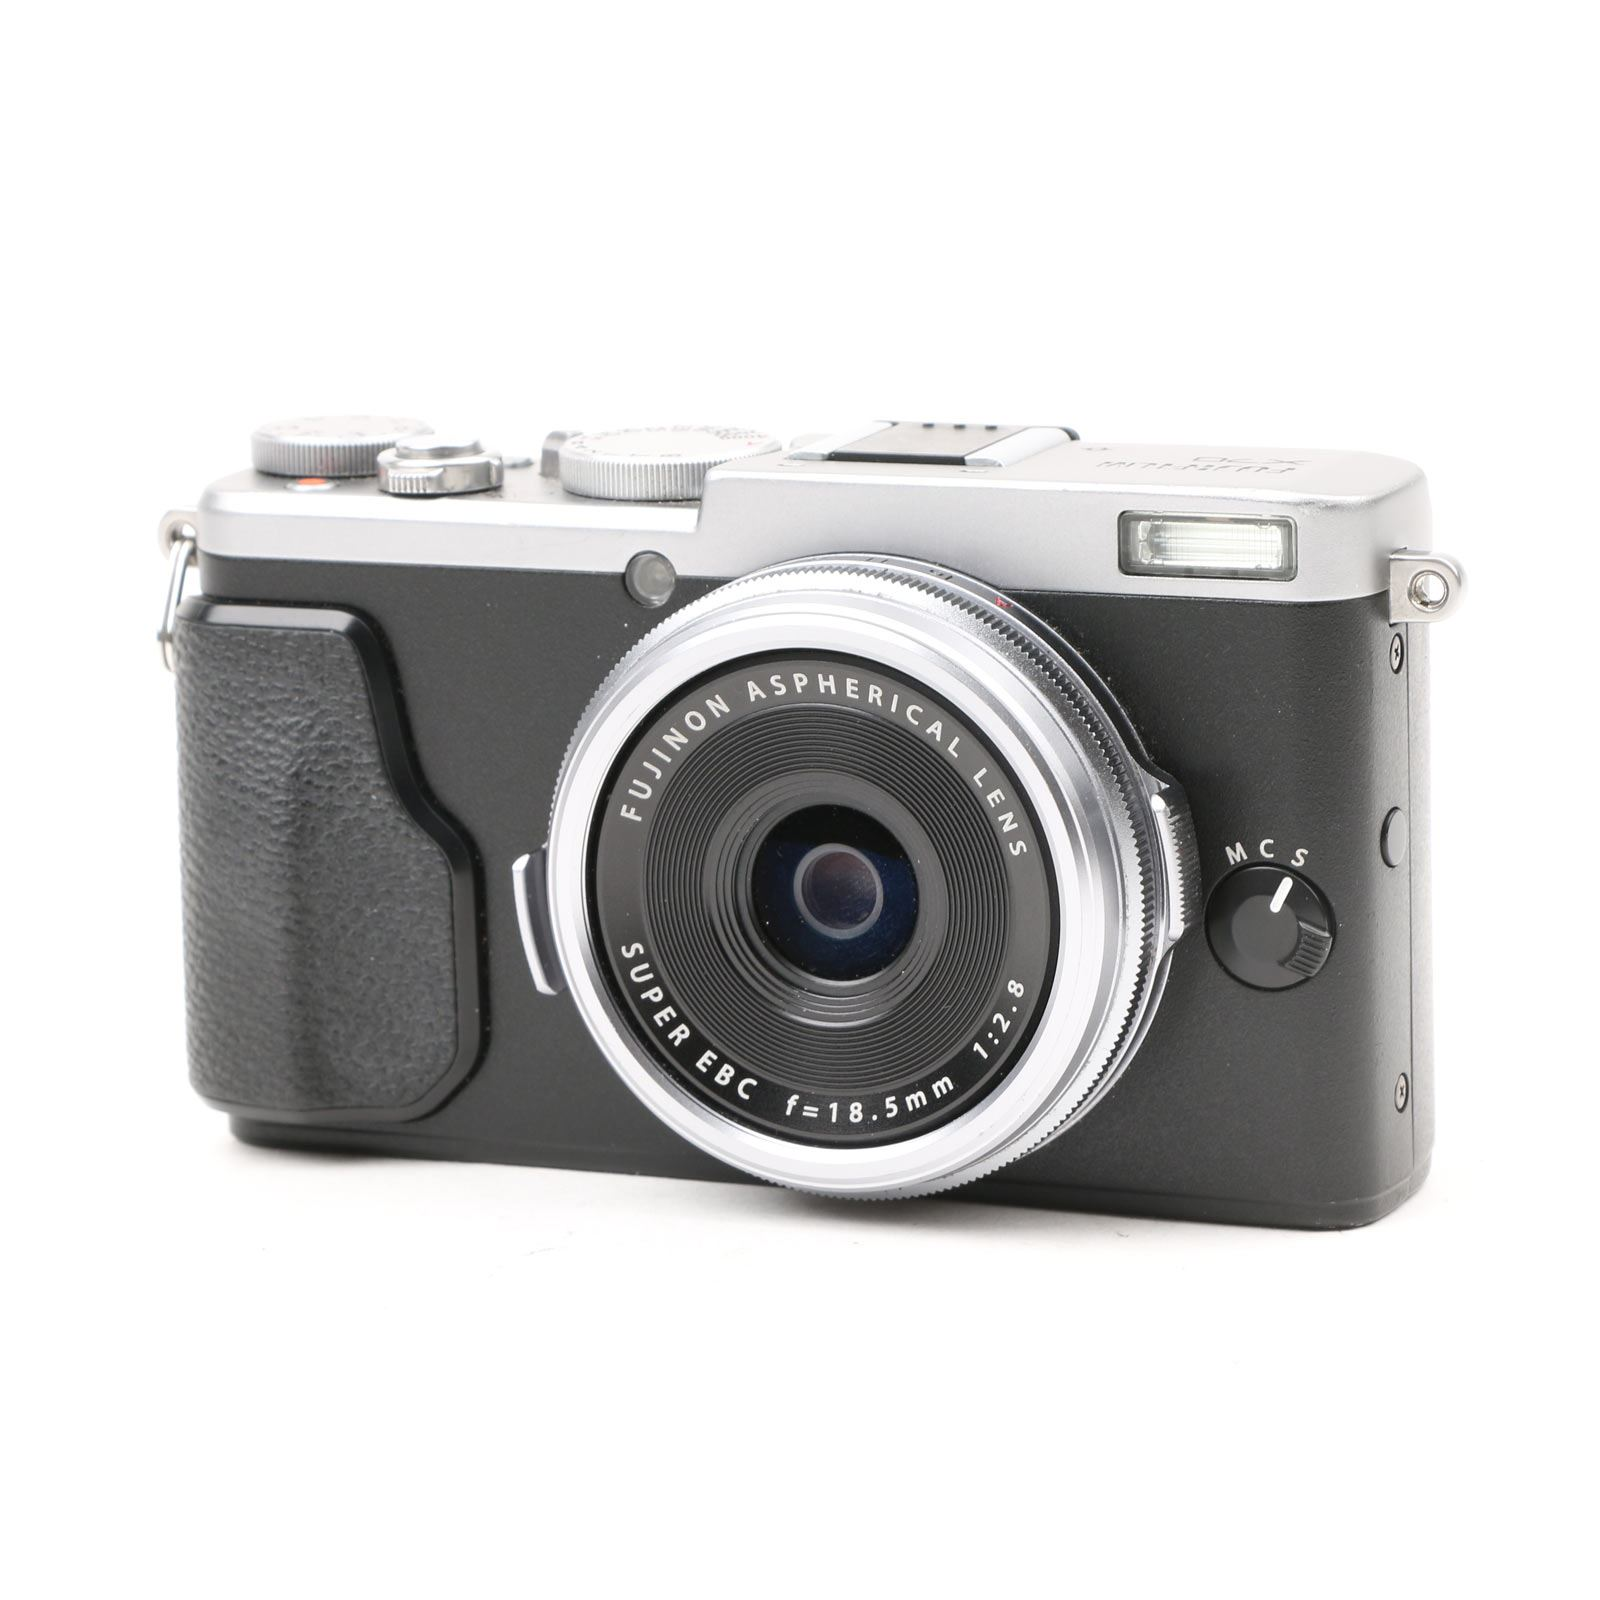 Image of Used Fuji X70 Digital Camera - Silver